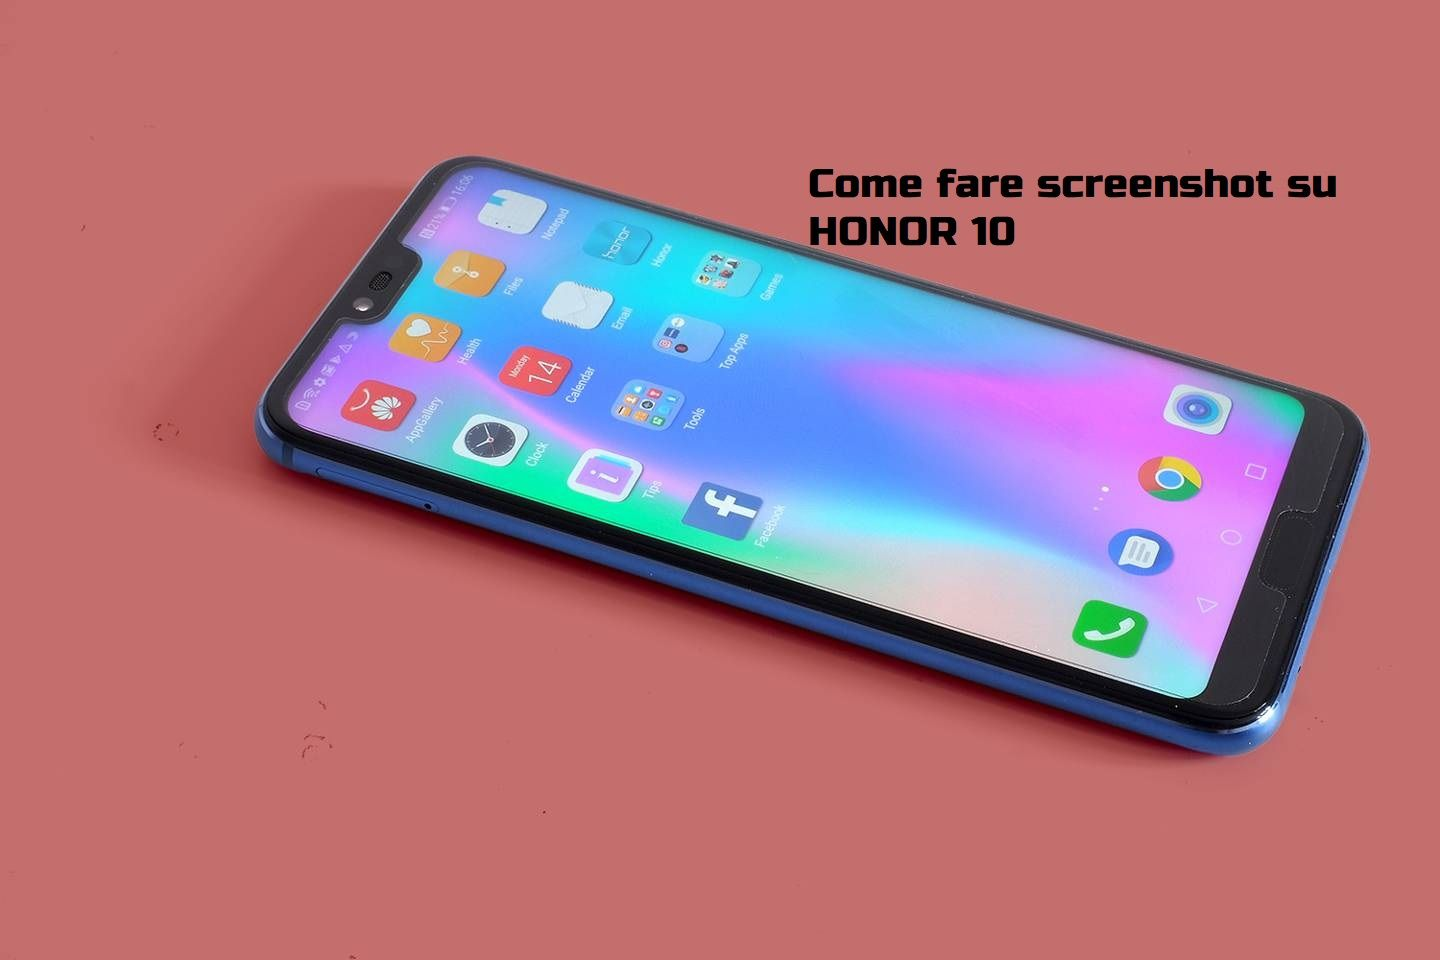 fare screenshot su Honor 10